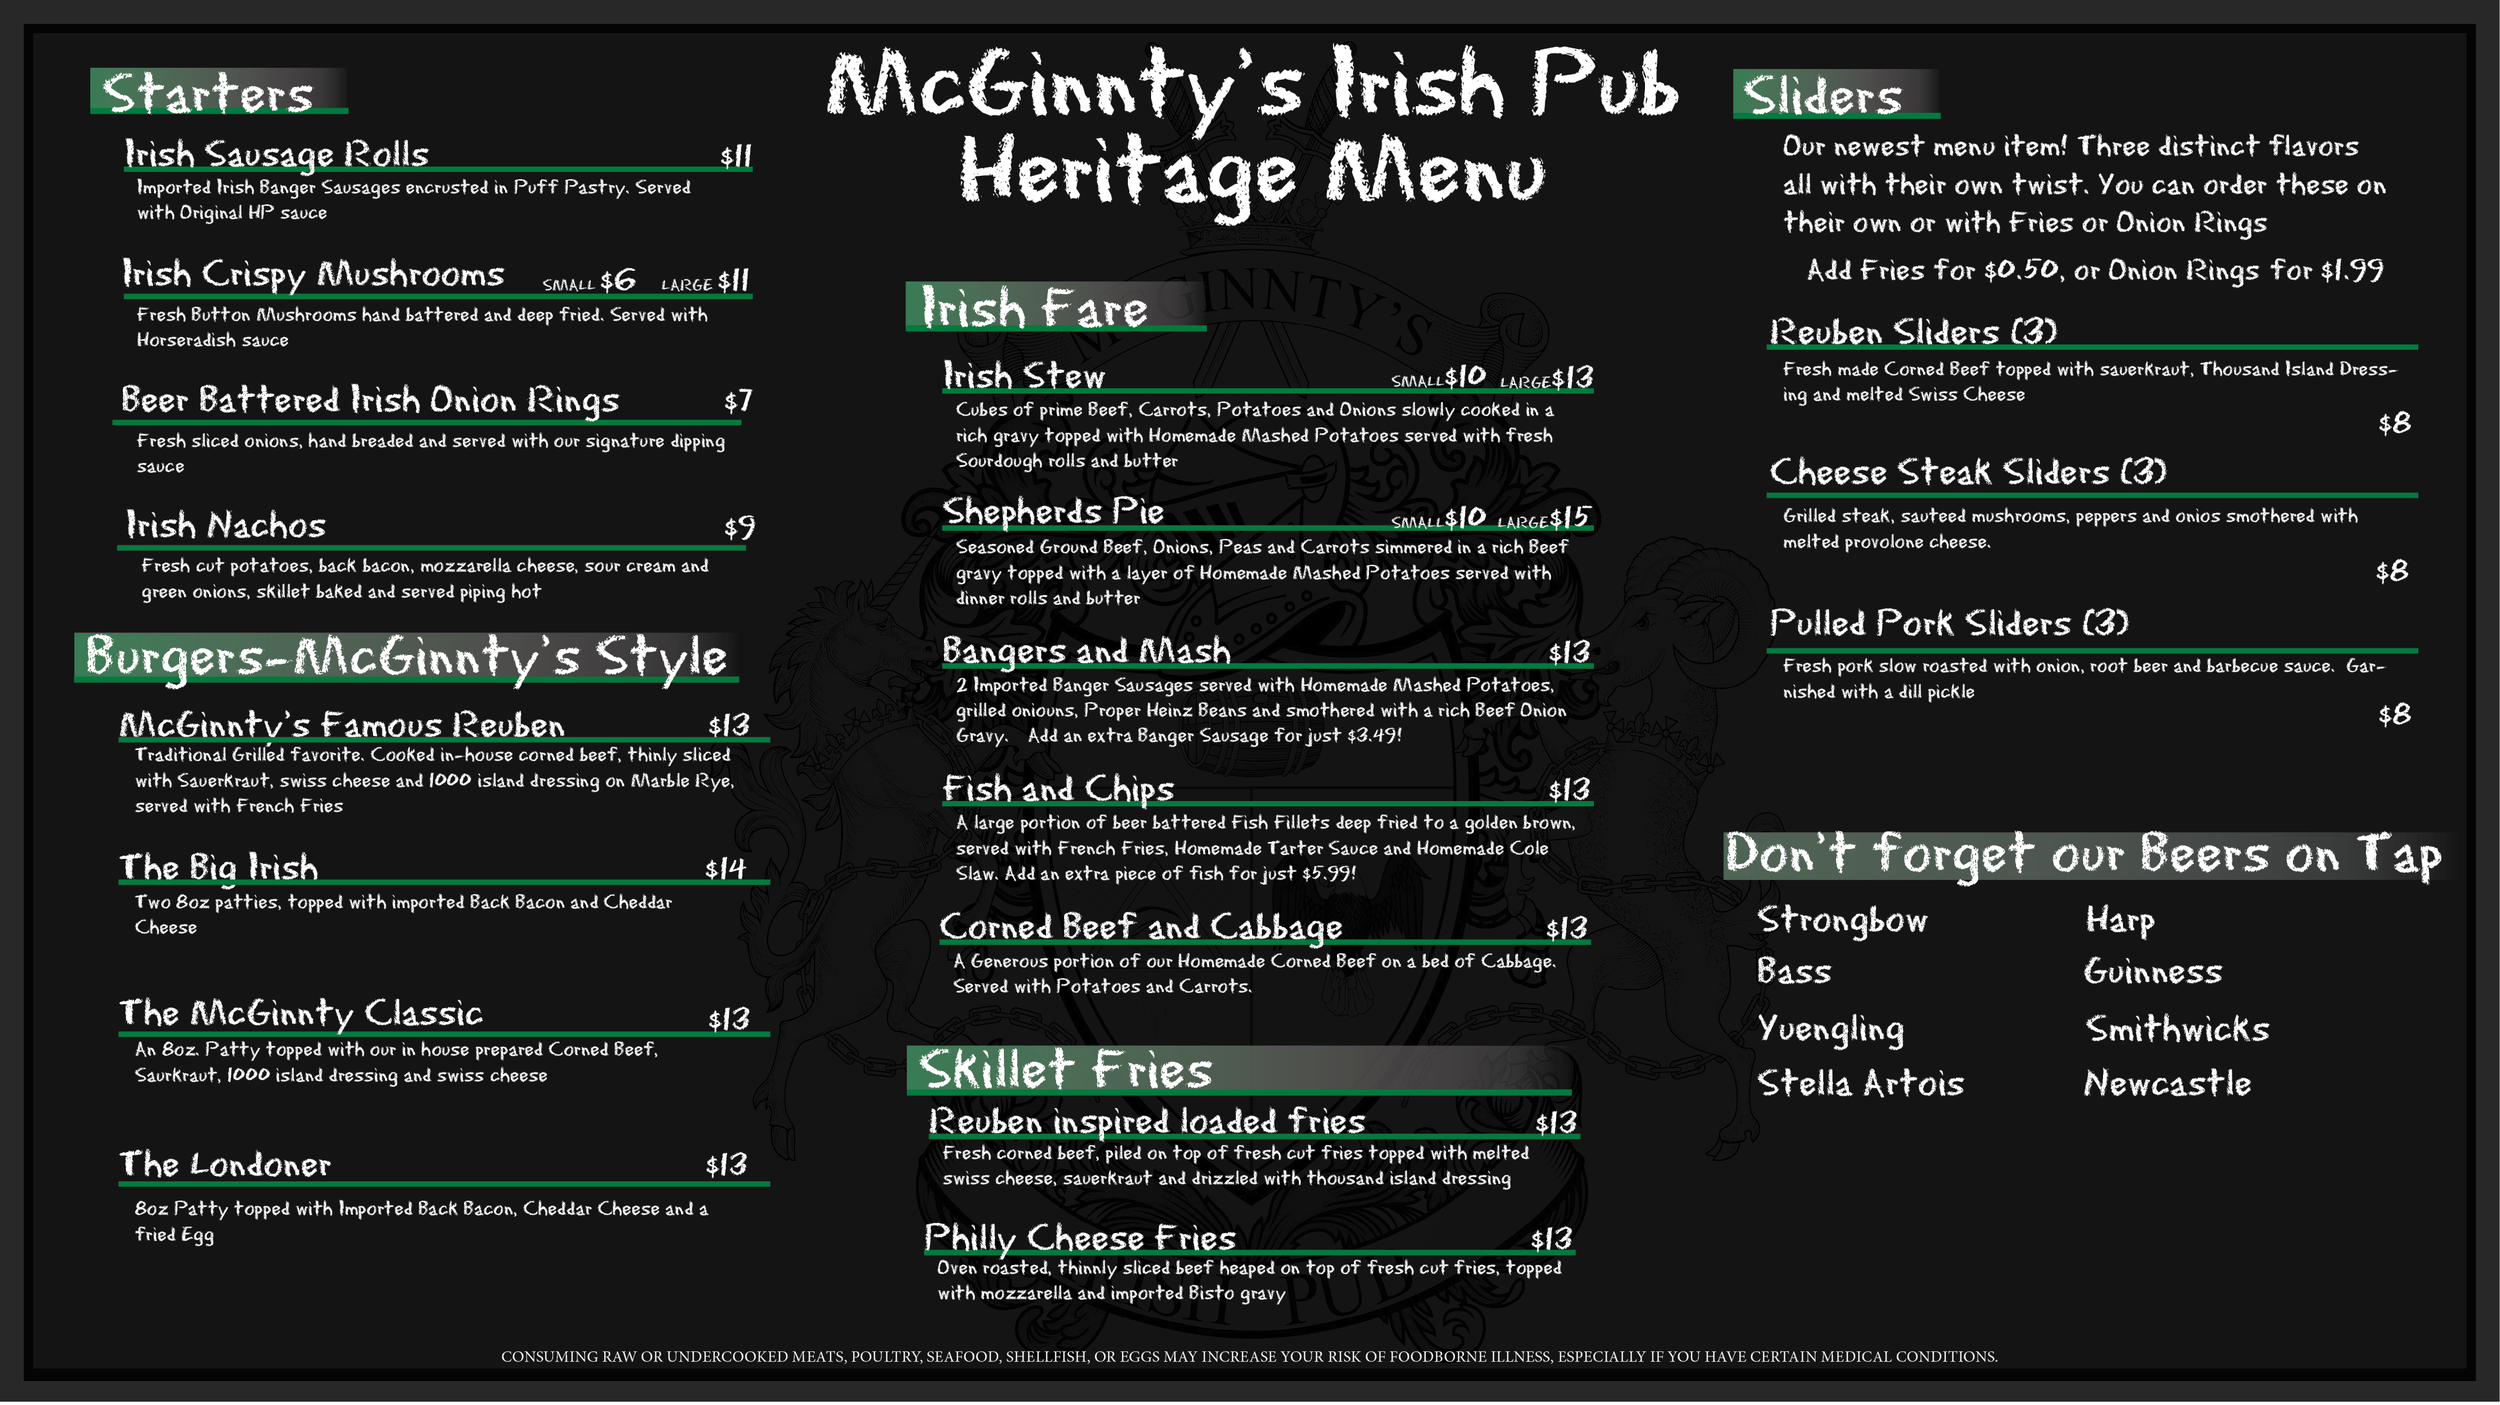 McGinnty's Heritage Menu Final.png